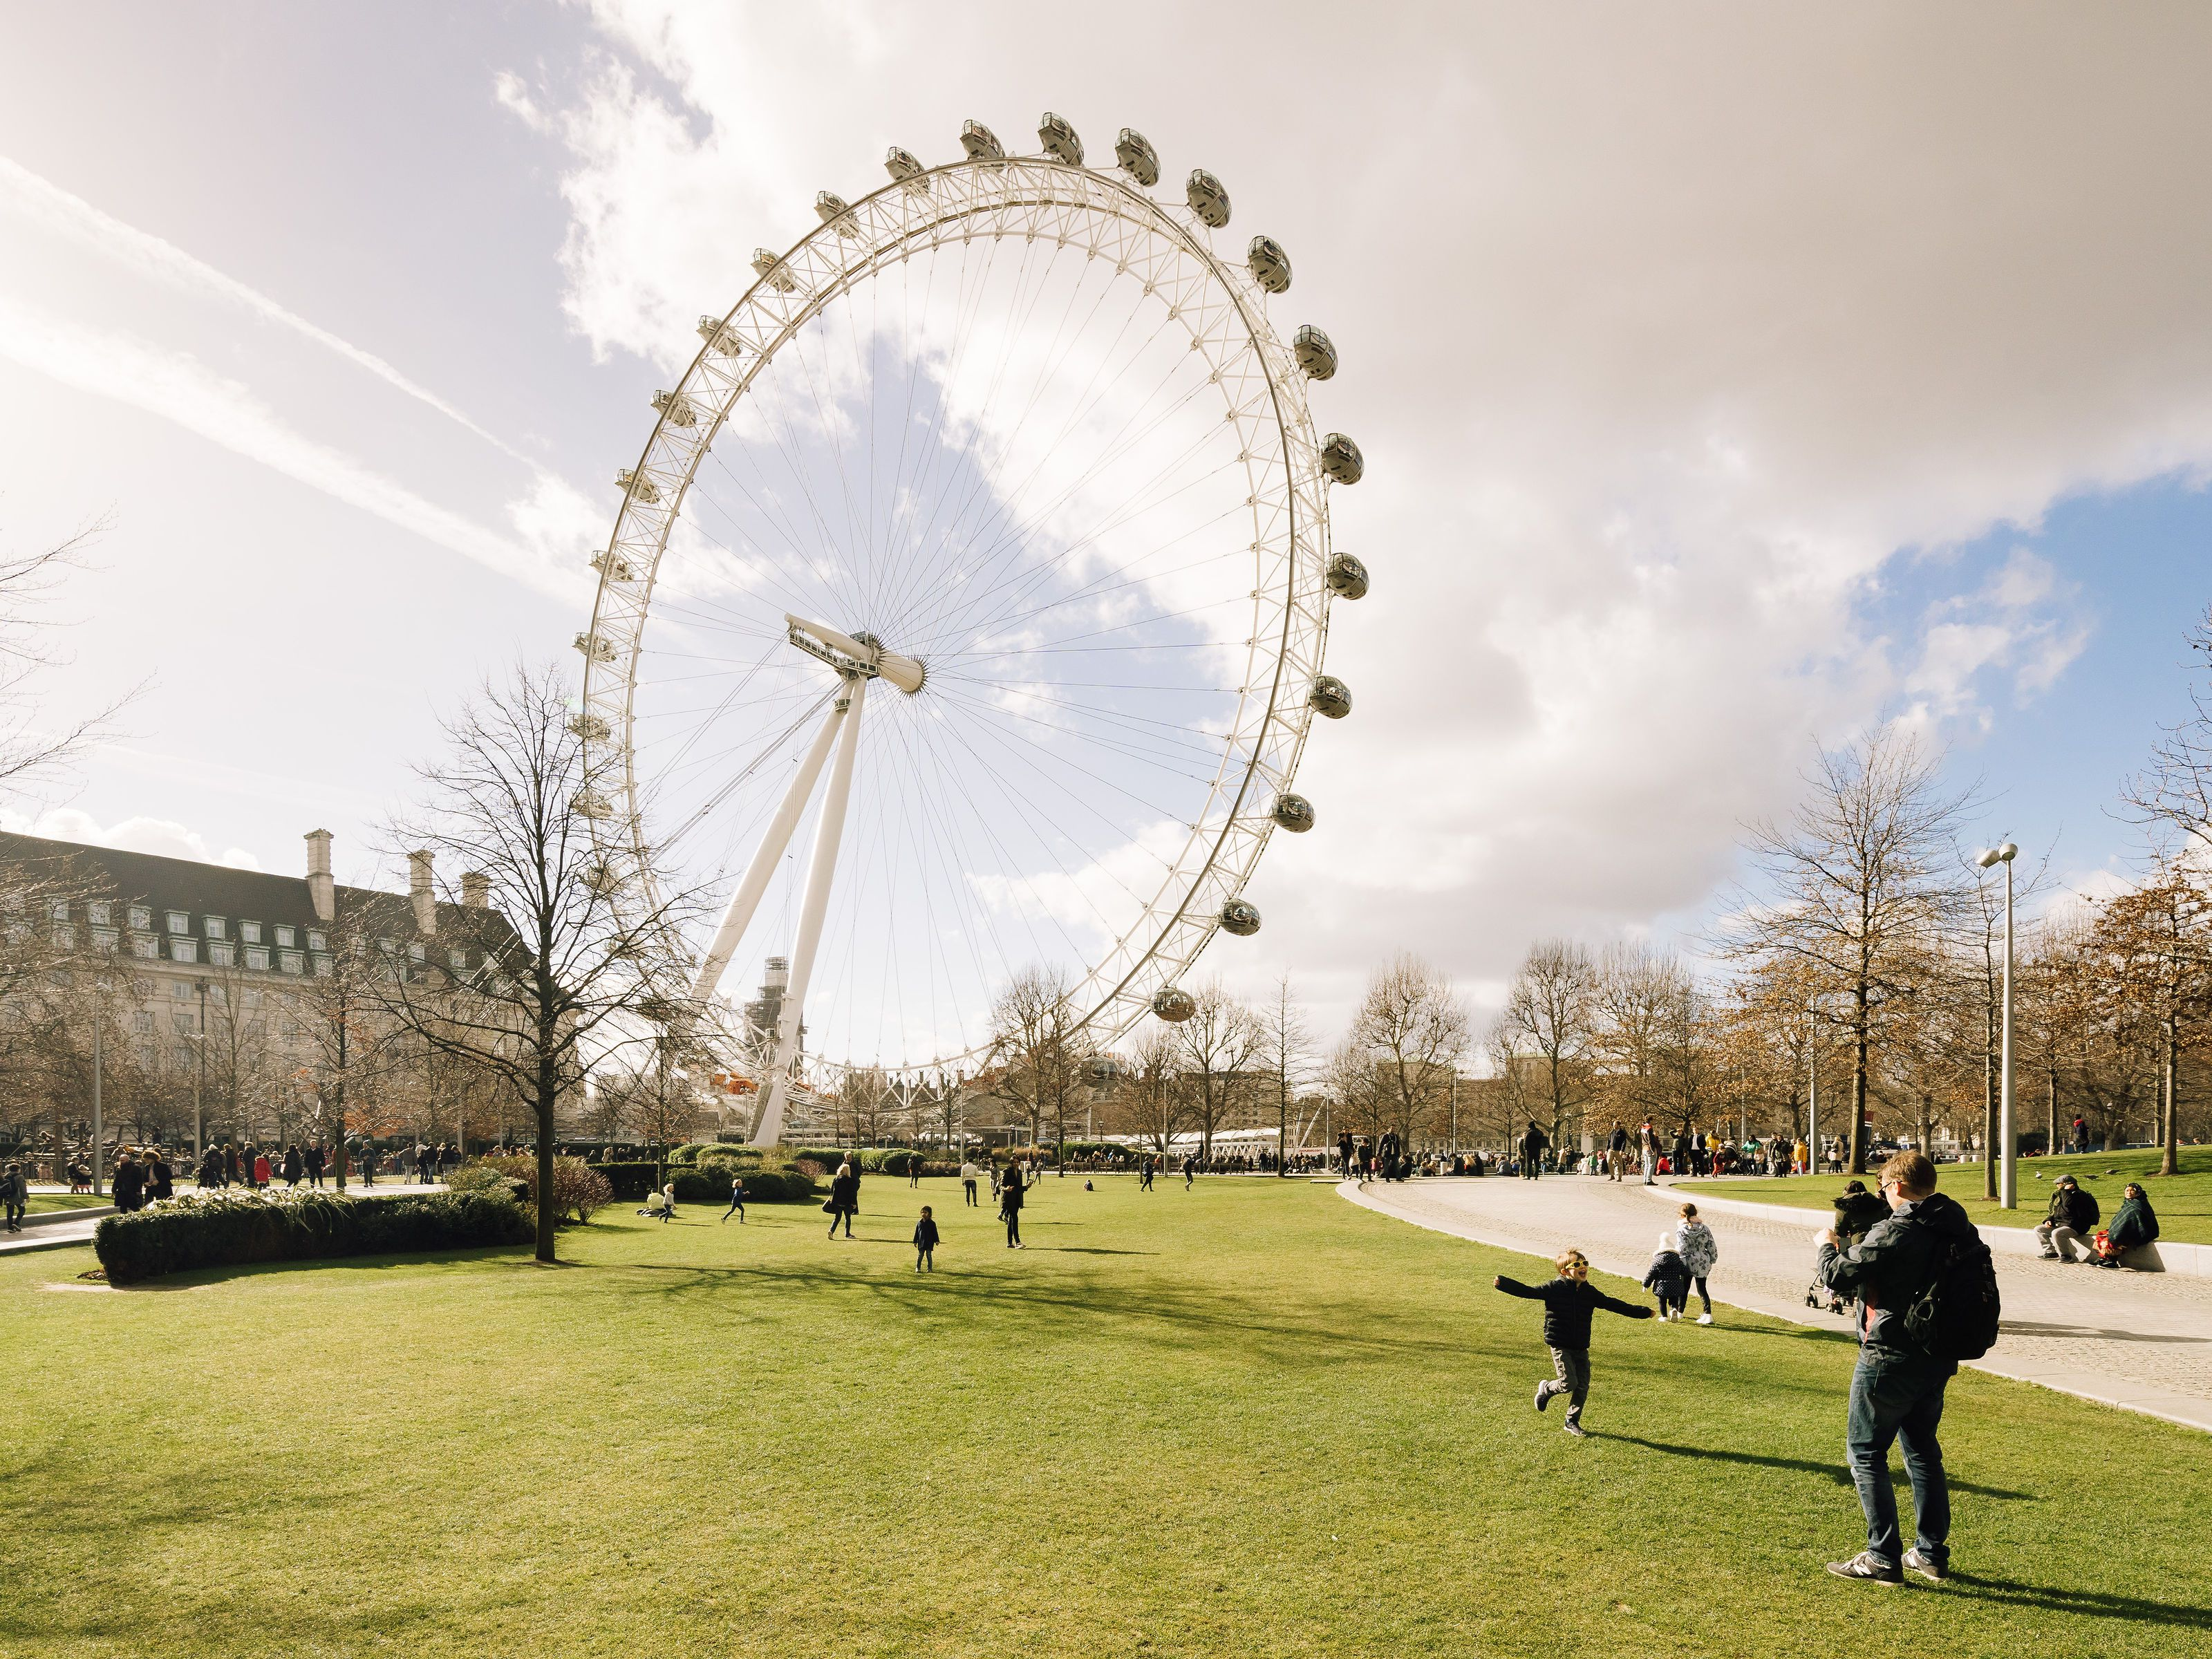 15 Fun Facts About The London Eye Images, Photos, Reviews